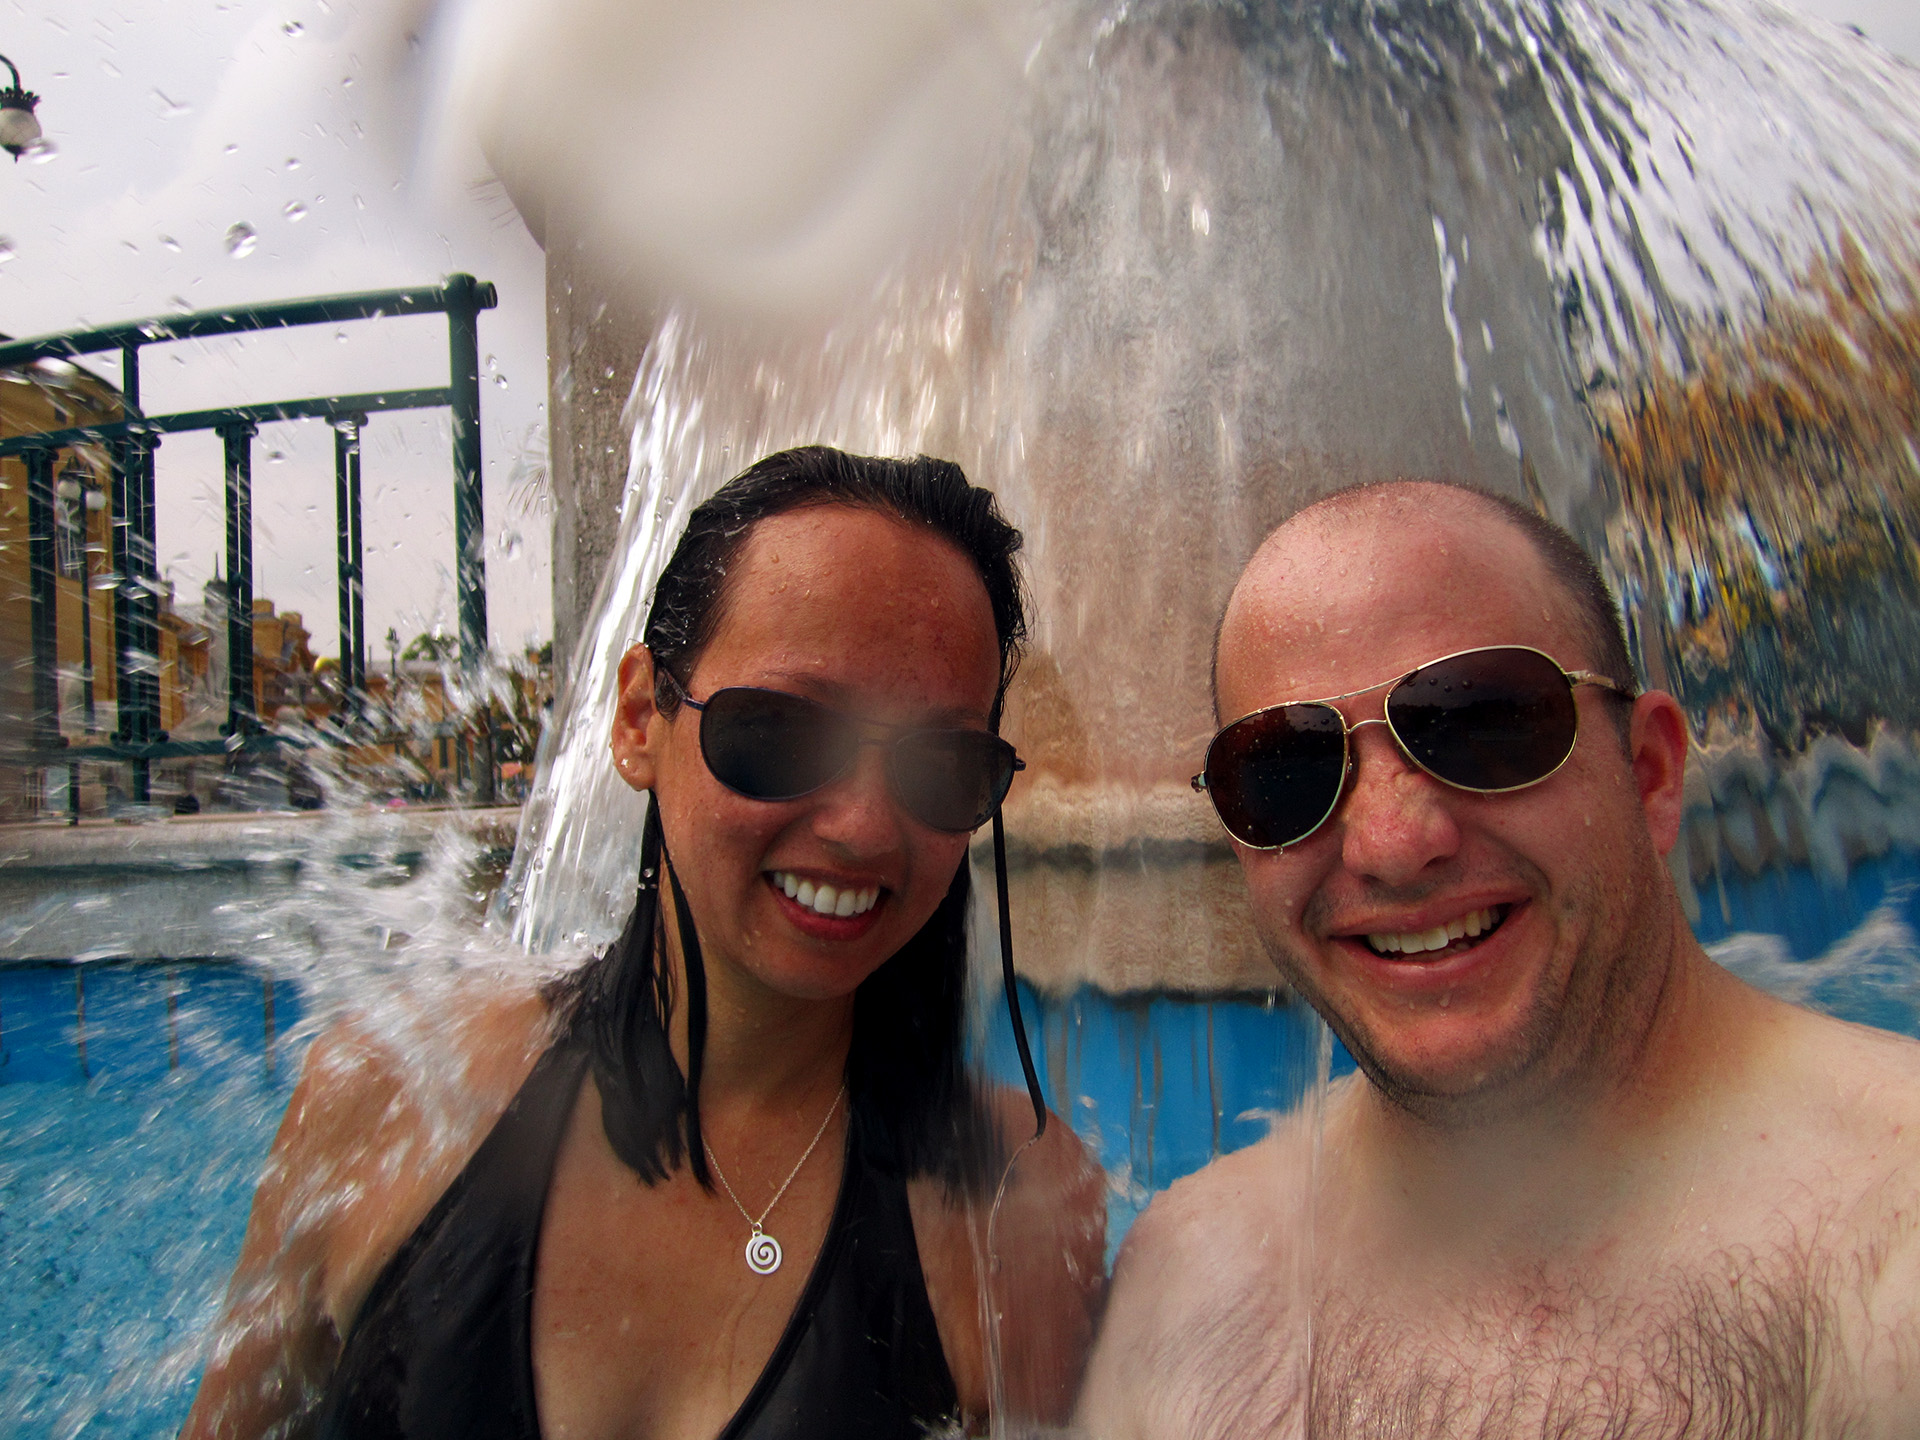 Heather and Matt at Szechenyi Baths.